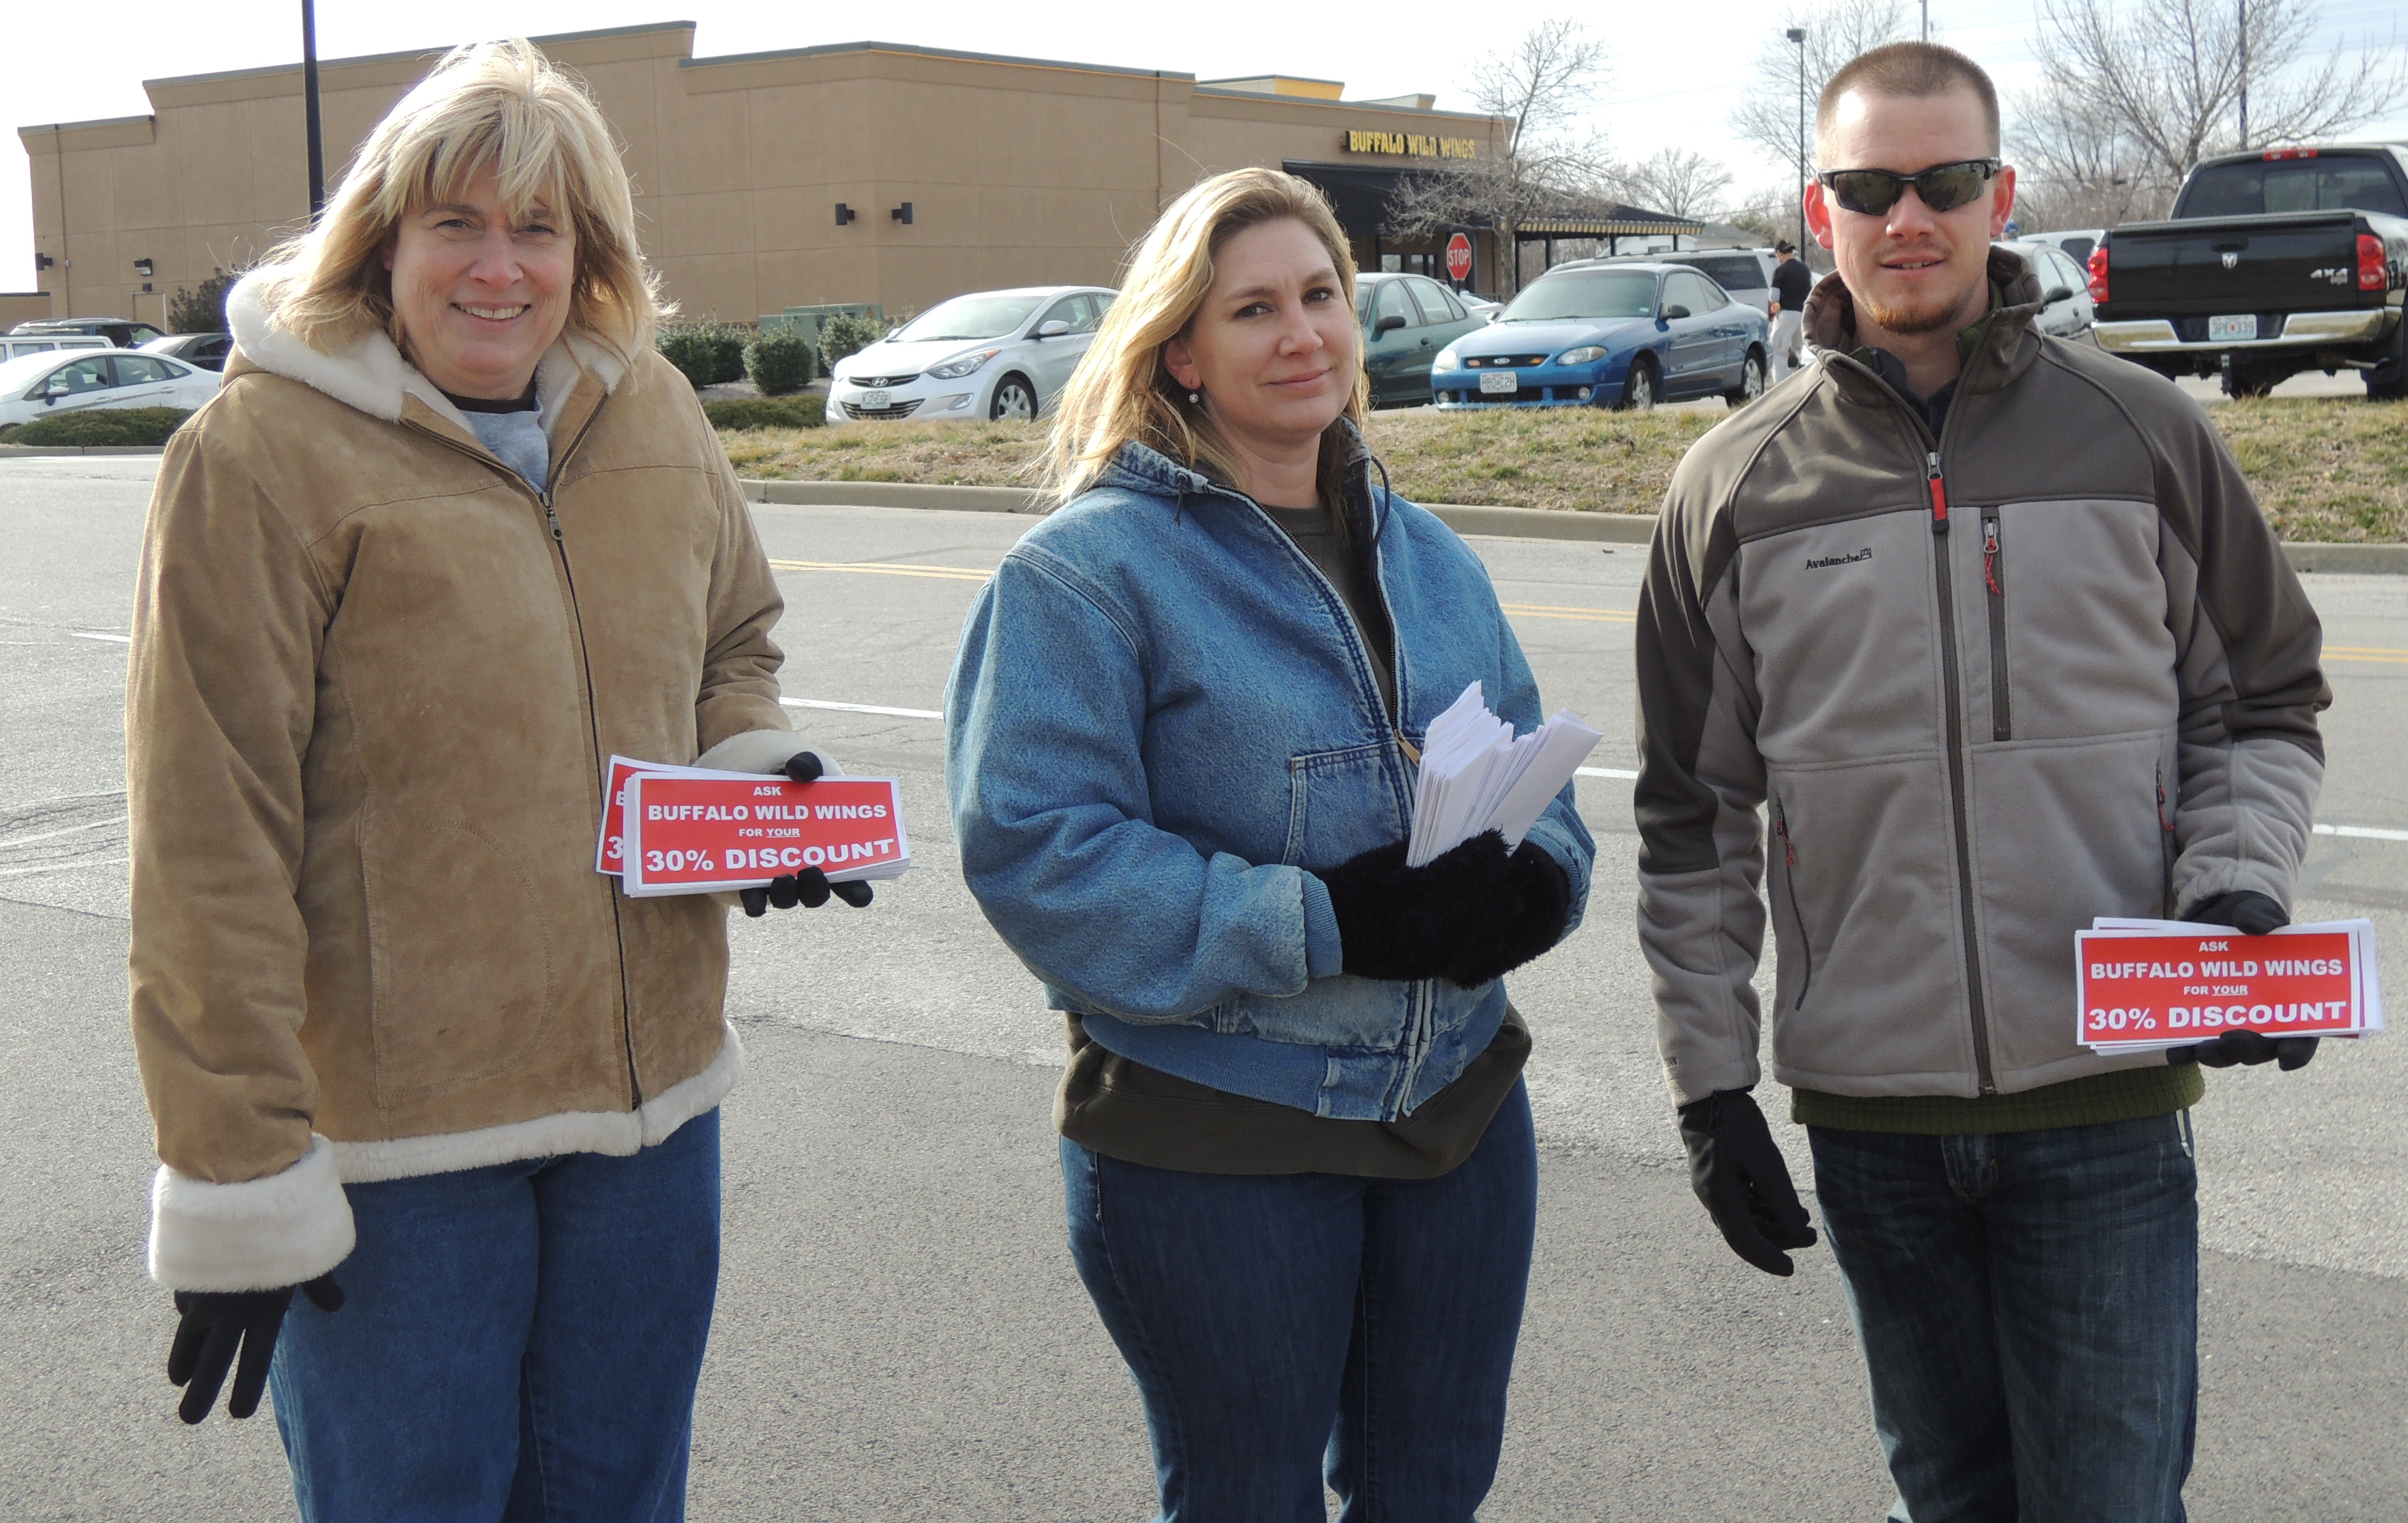 Meanwhile, Journeyman Wiremen Roxanna DiMariano, Heather Kehoe and Johnathan Burrson handbilled outside the chain's O'Fallon location.  IBEW Local 1 also bannered and handbilled outside the chains' Ballwin, Brentwood, Creve Coeur, Fenton and Mid Rivers locations.